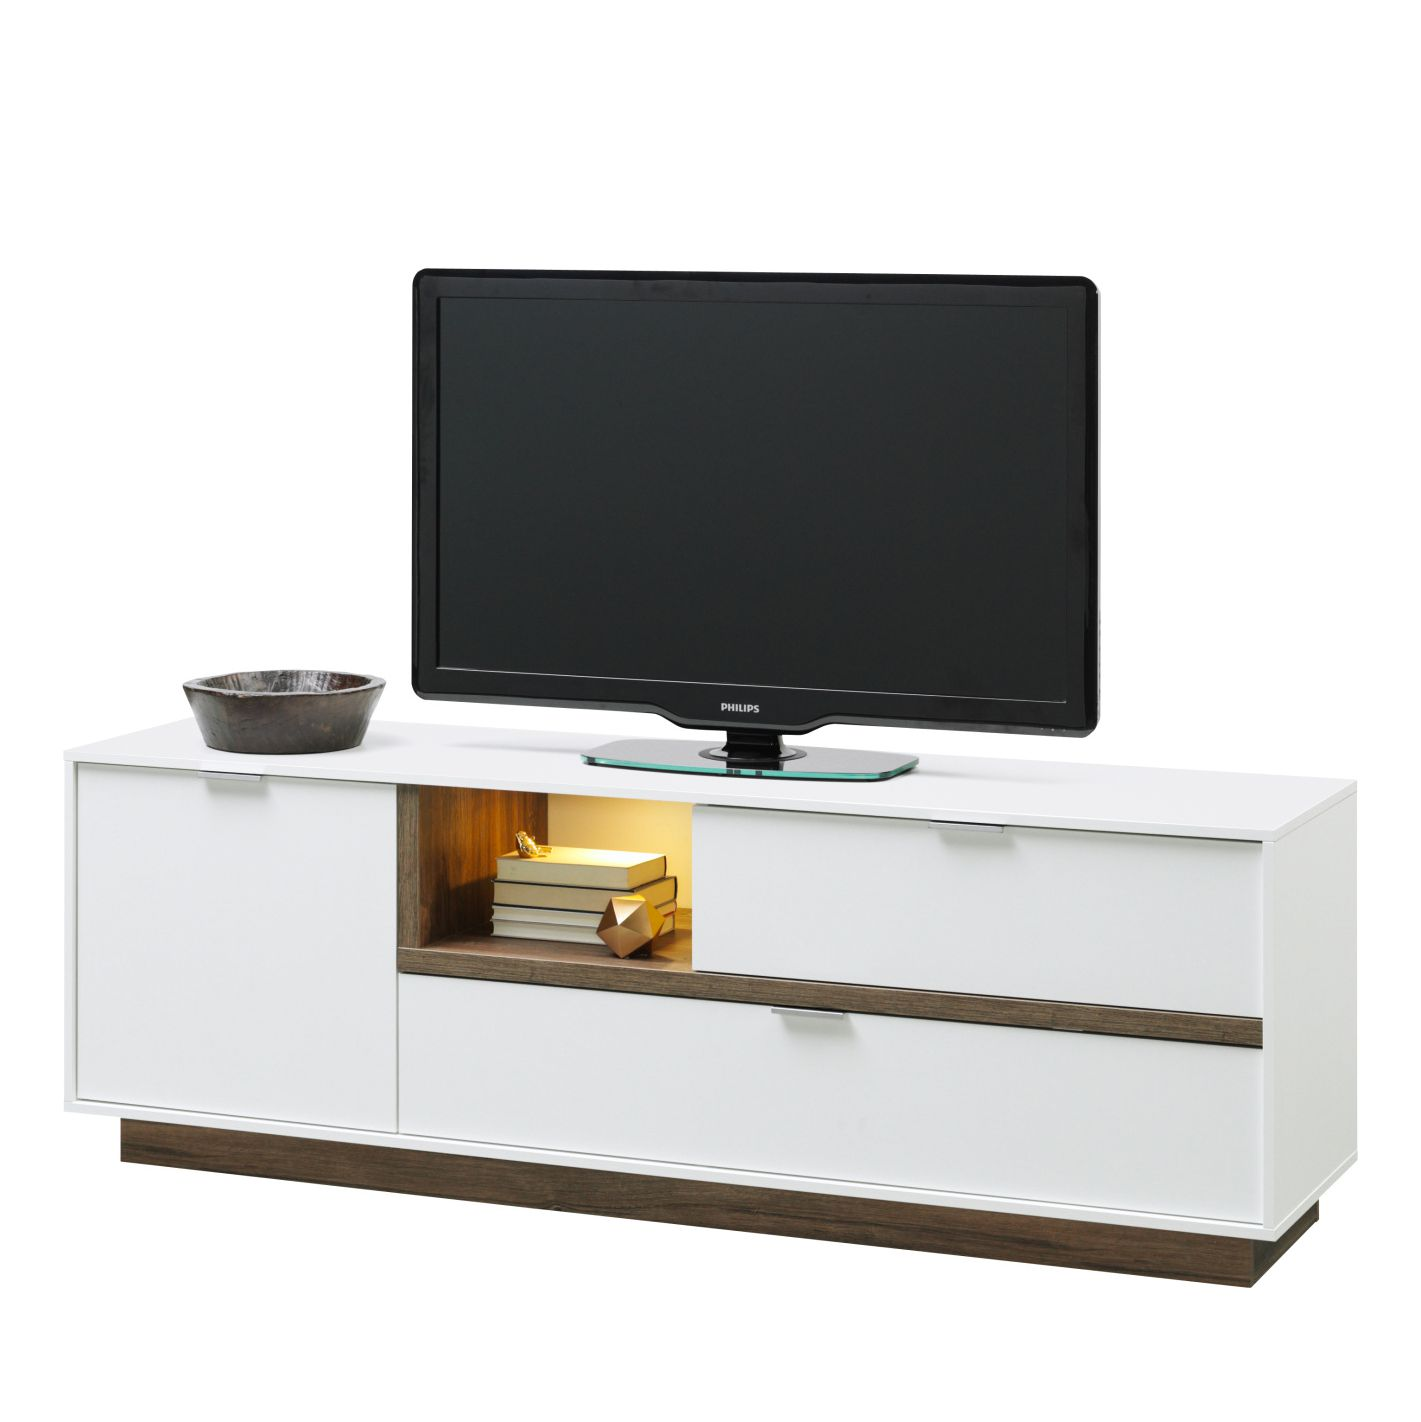 Meuble TV My Ell II - Blanc / Imitation chêne de Stirling, Cs Schmal